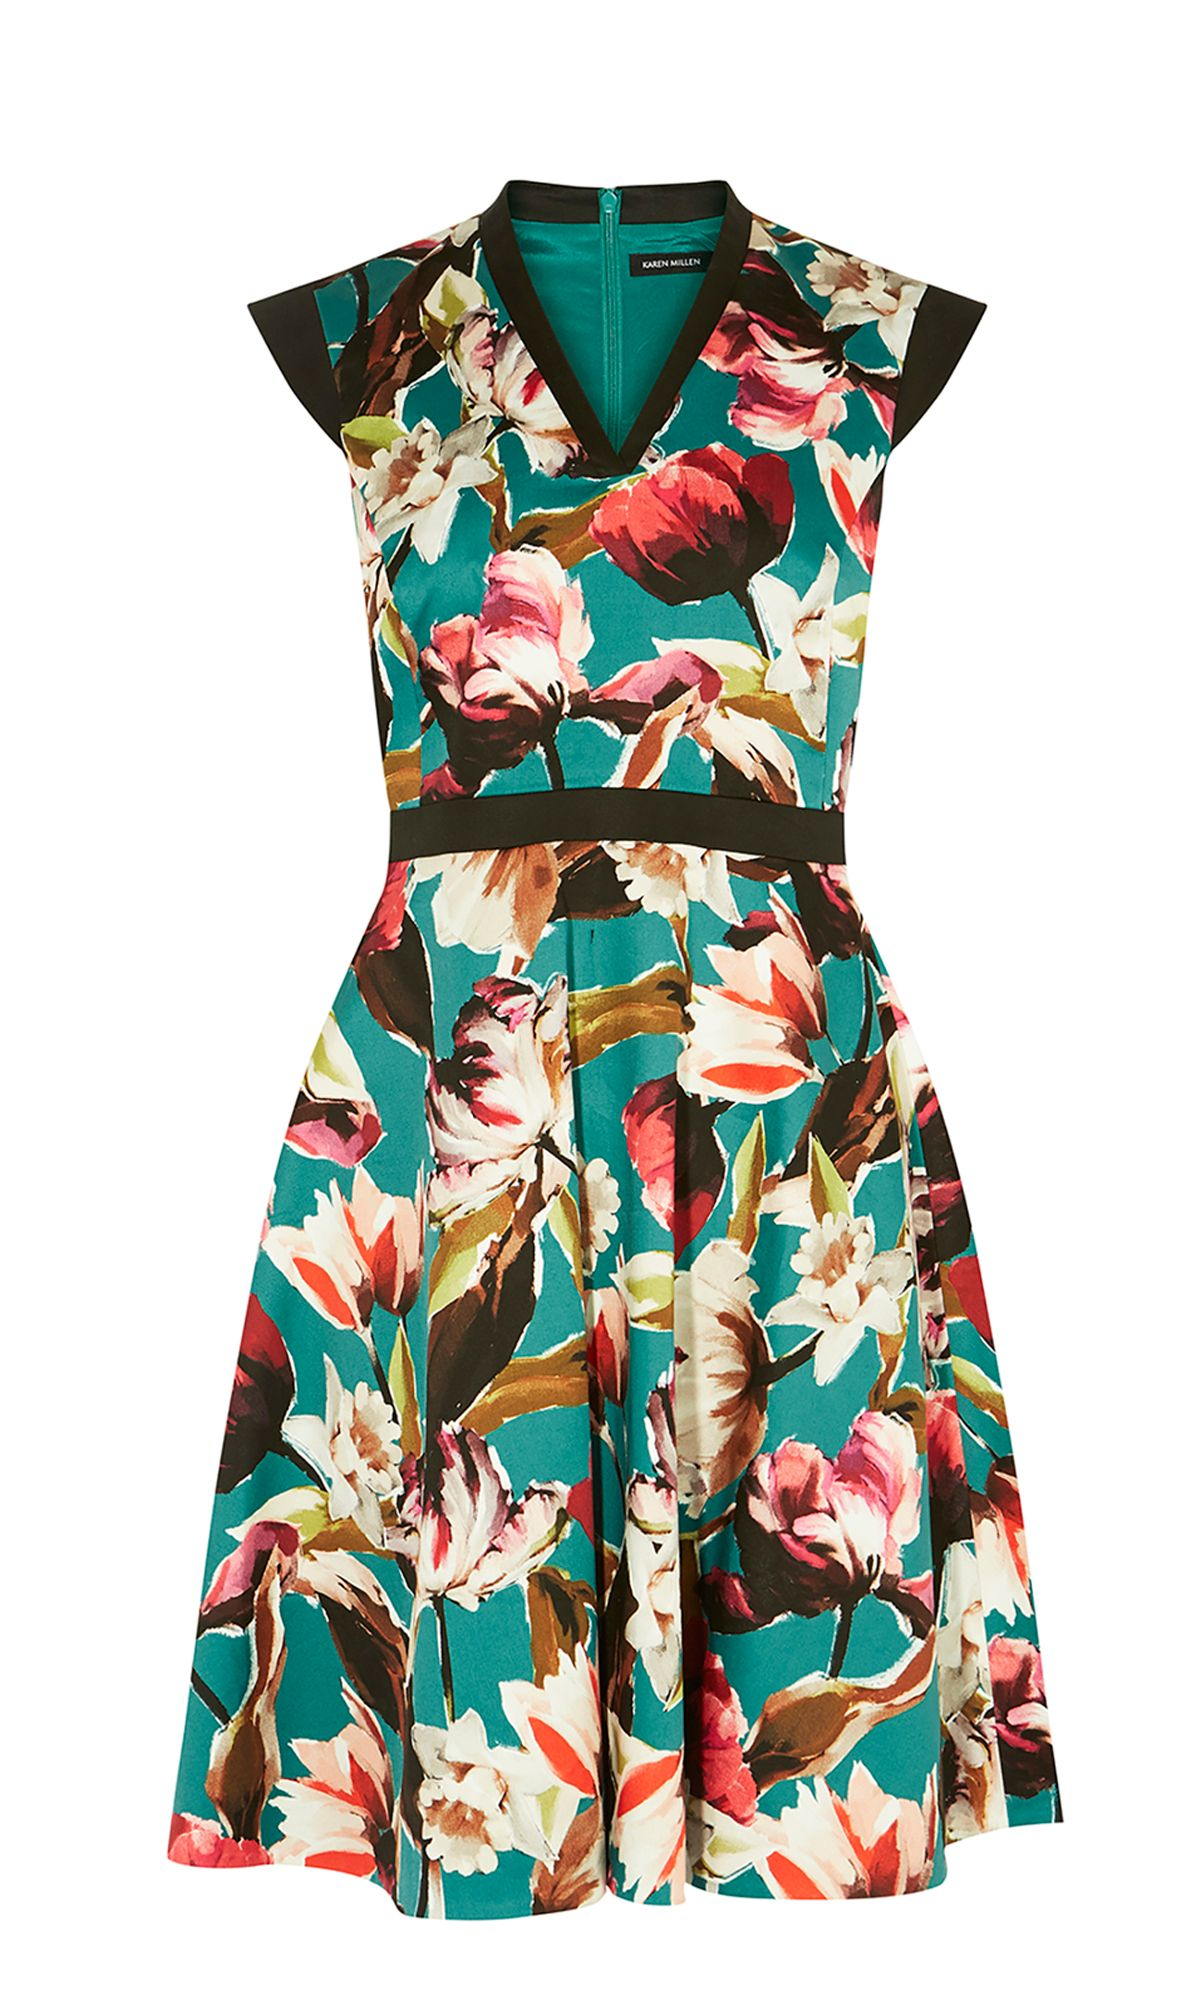 Karen Millen Floral Cotton Skater Dress, Multi-Coloured